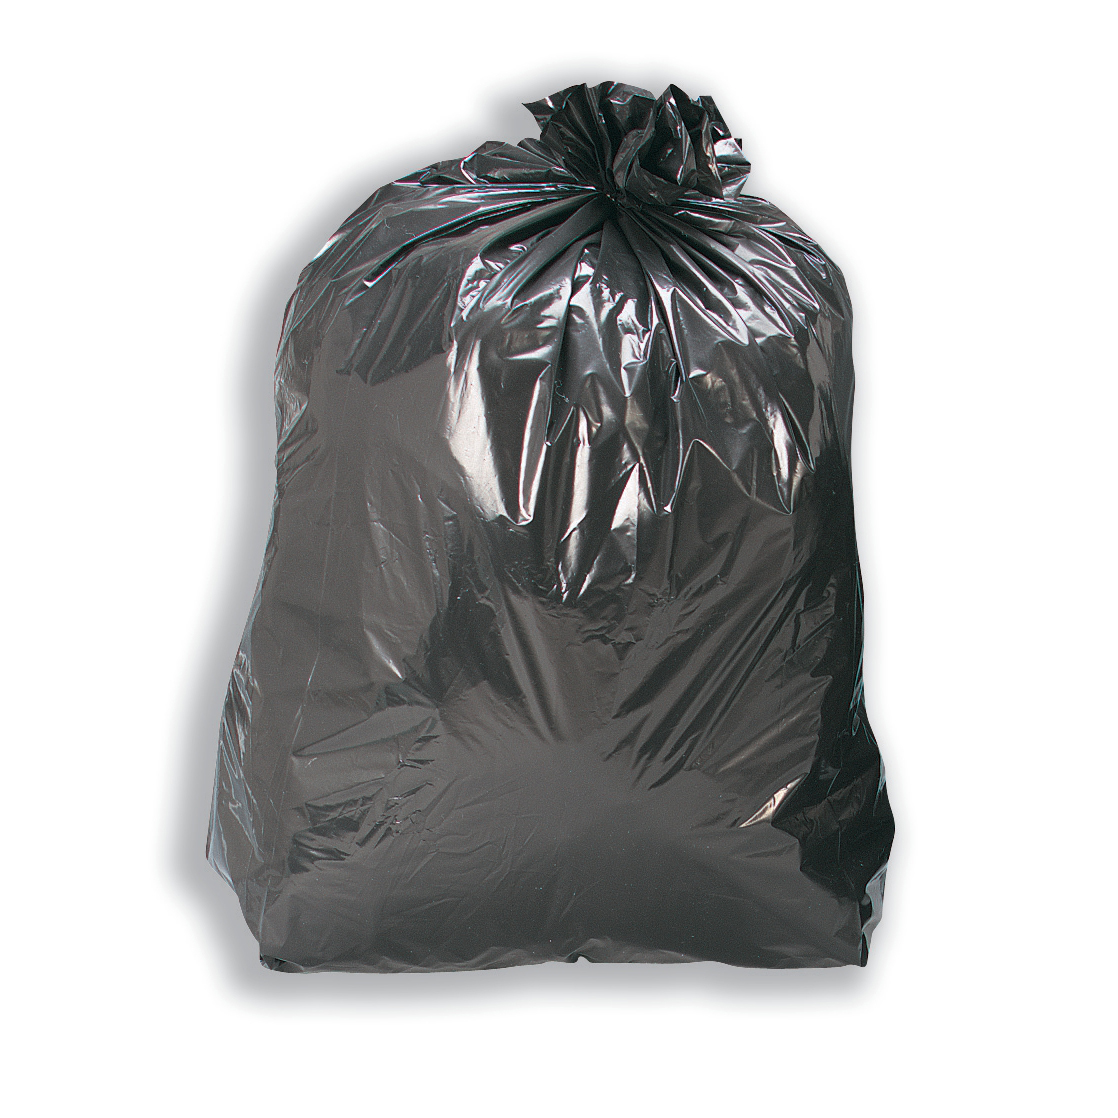 Bin Bags & Liners 5 Star Facilities Bin Liners Medium/Heavy Duty 110 Litre Capacity W450/690xH945mm Black Pack 200